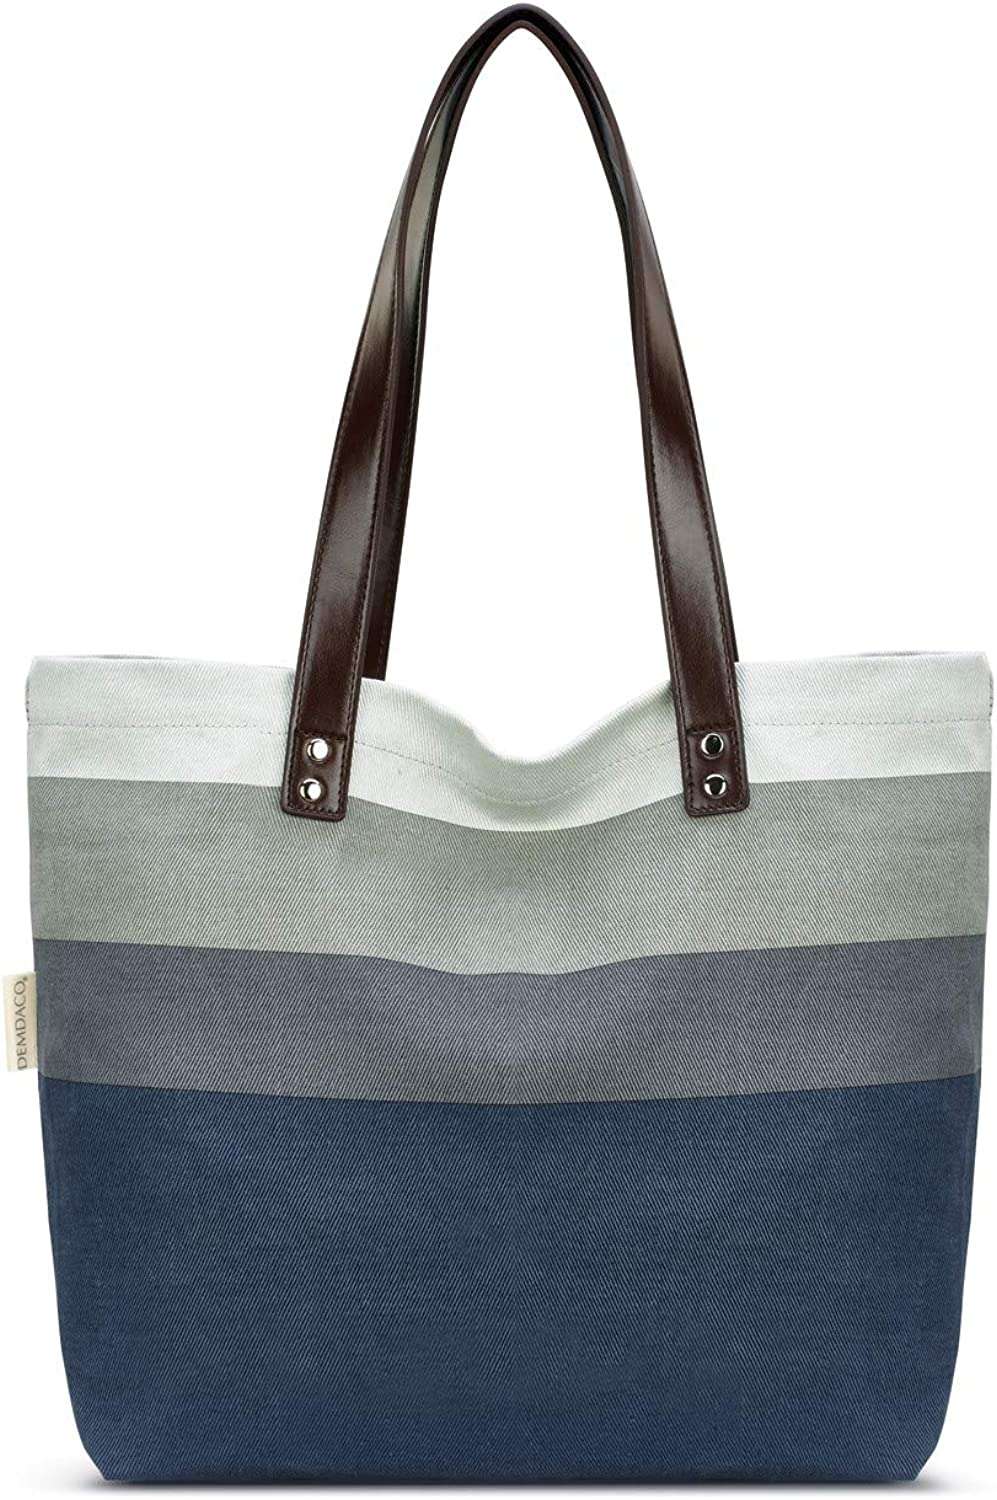 DEMDACO 16 x 12.5 Inch Canvas & Leatherette Shoulder Tote Bag